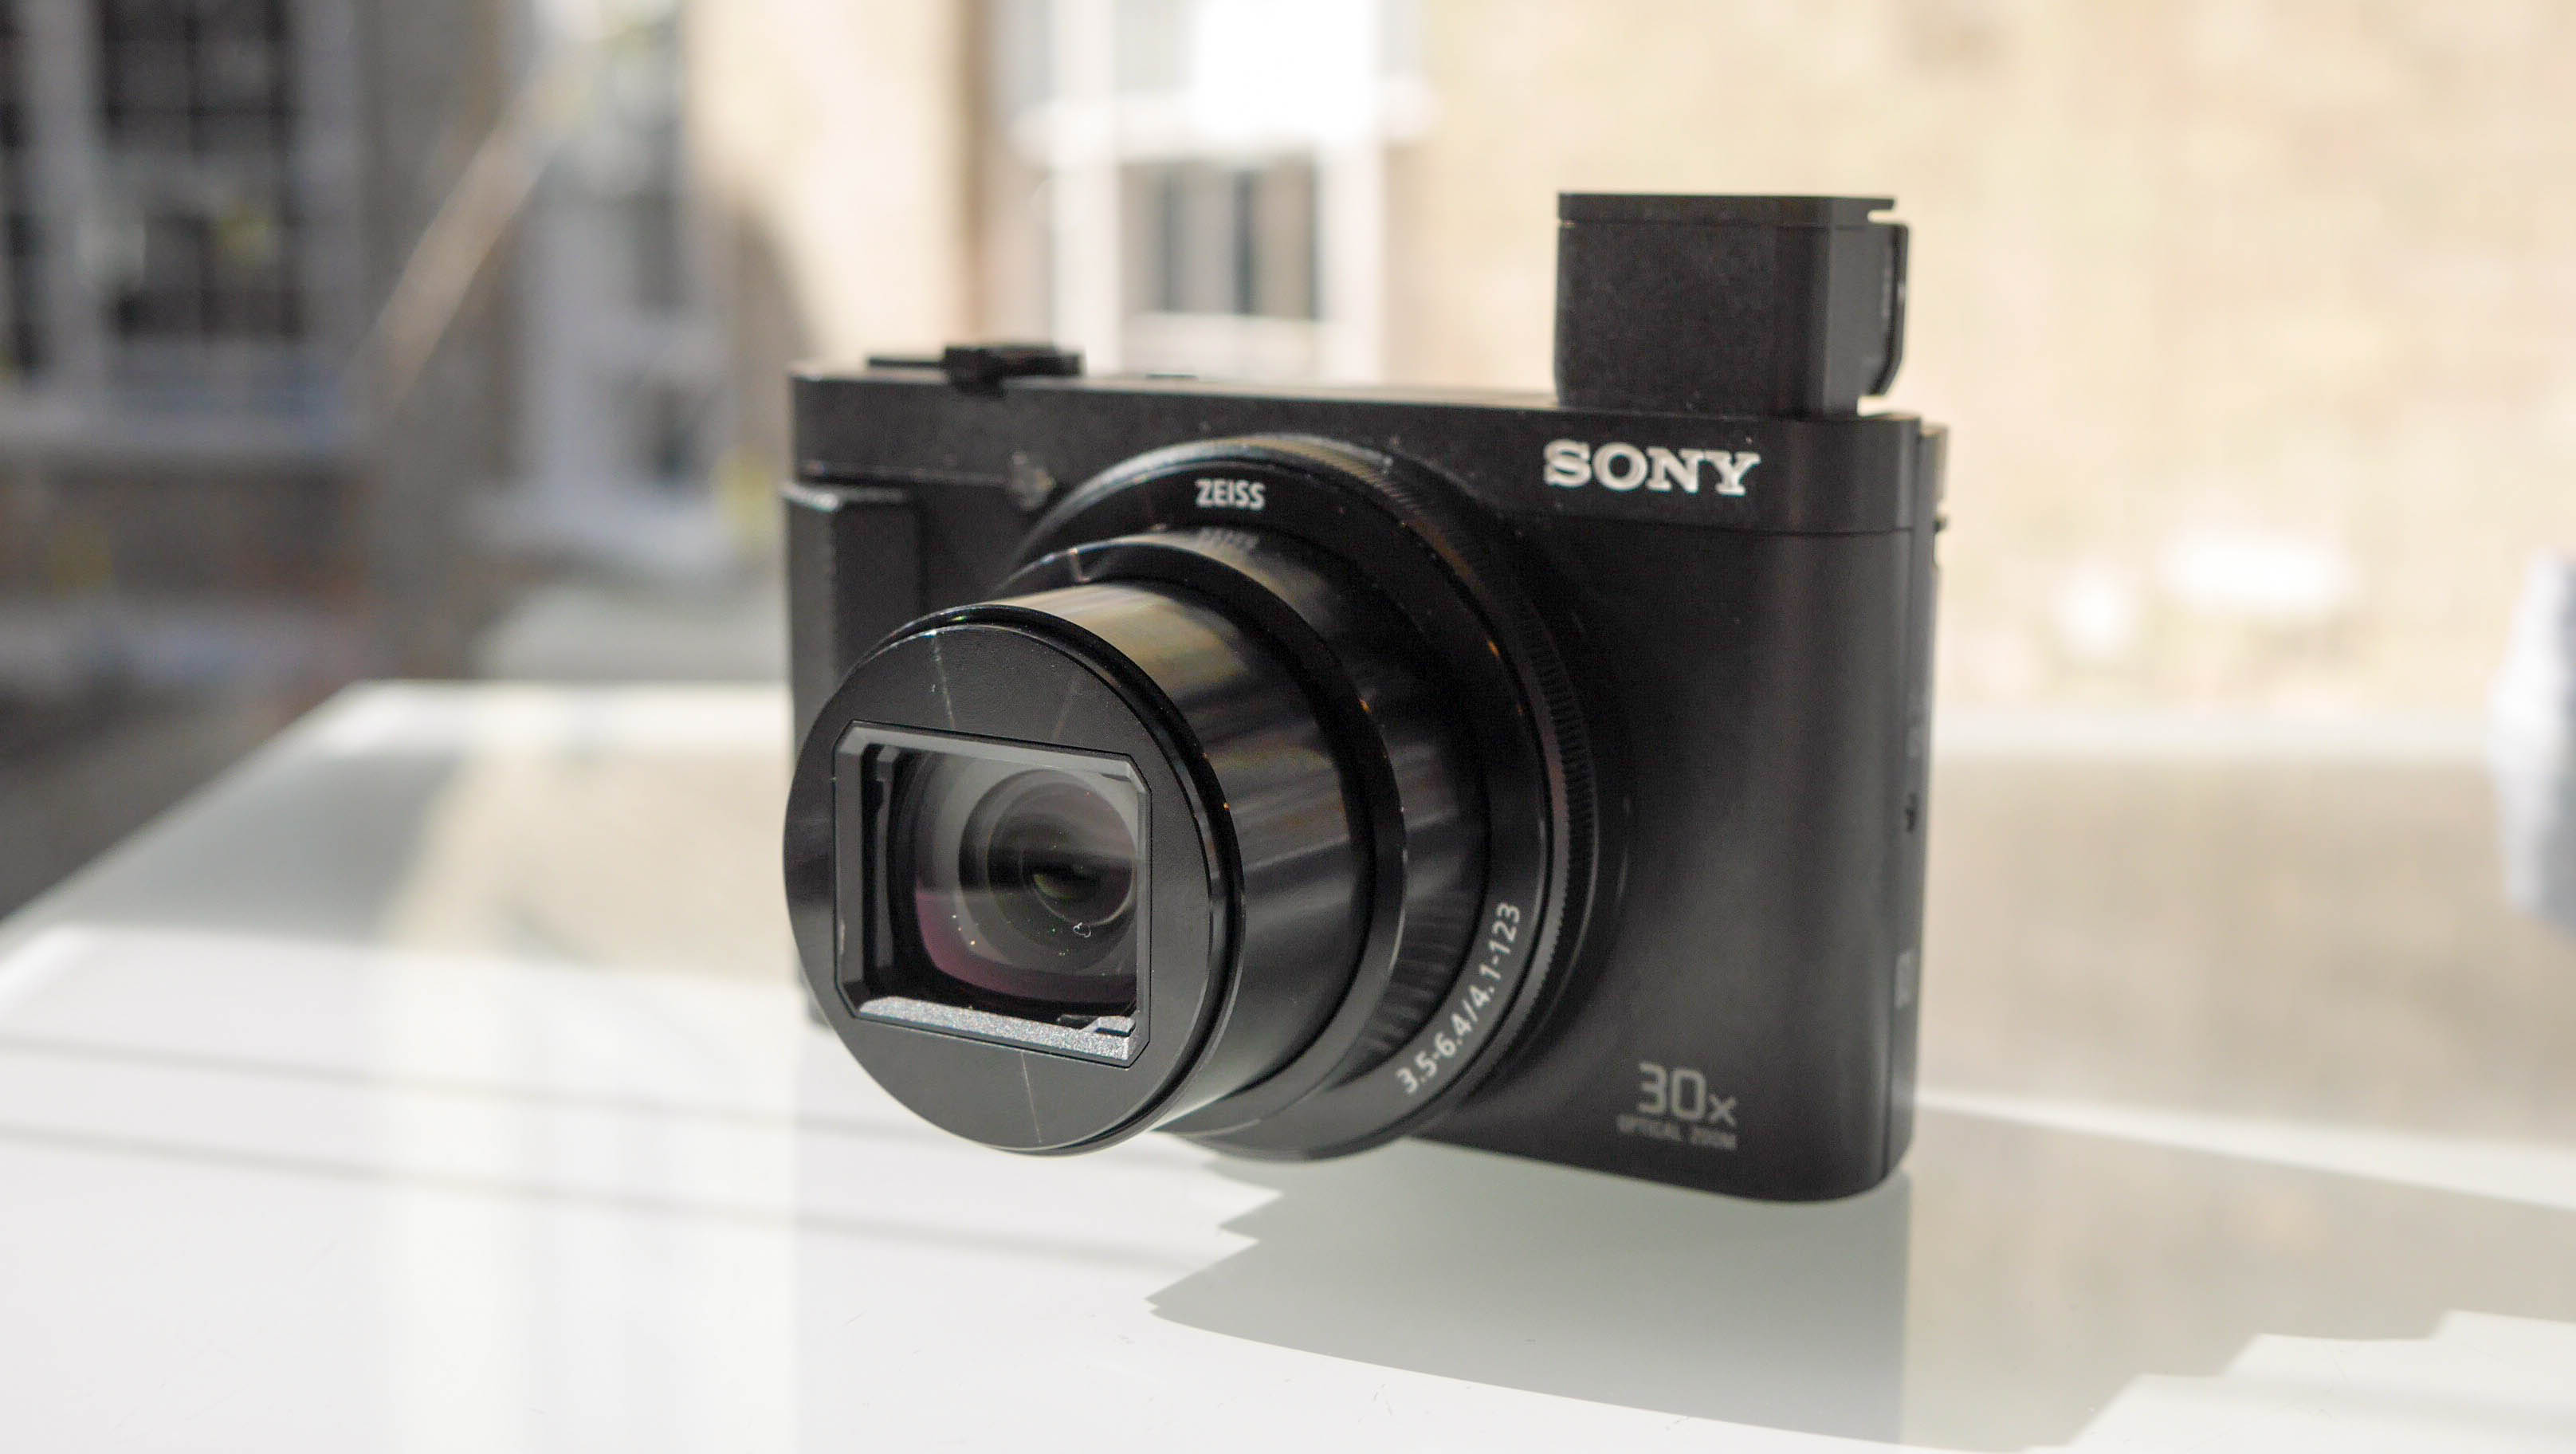 Sony CyberShot HX90, HX90v review - hands on | Expert Reviews